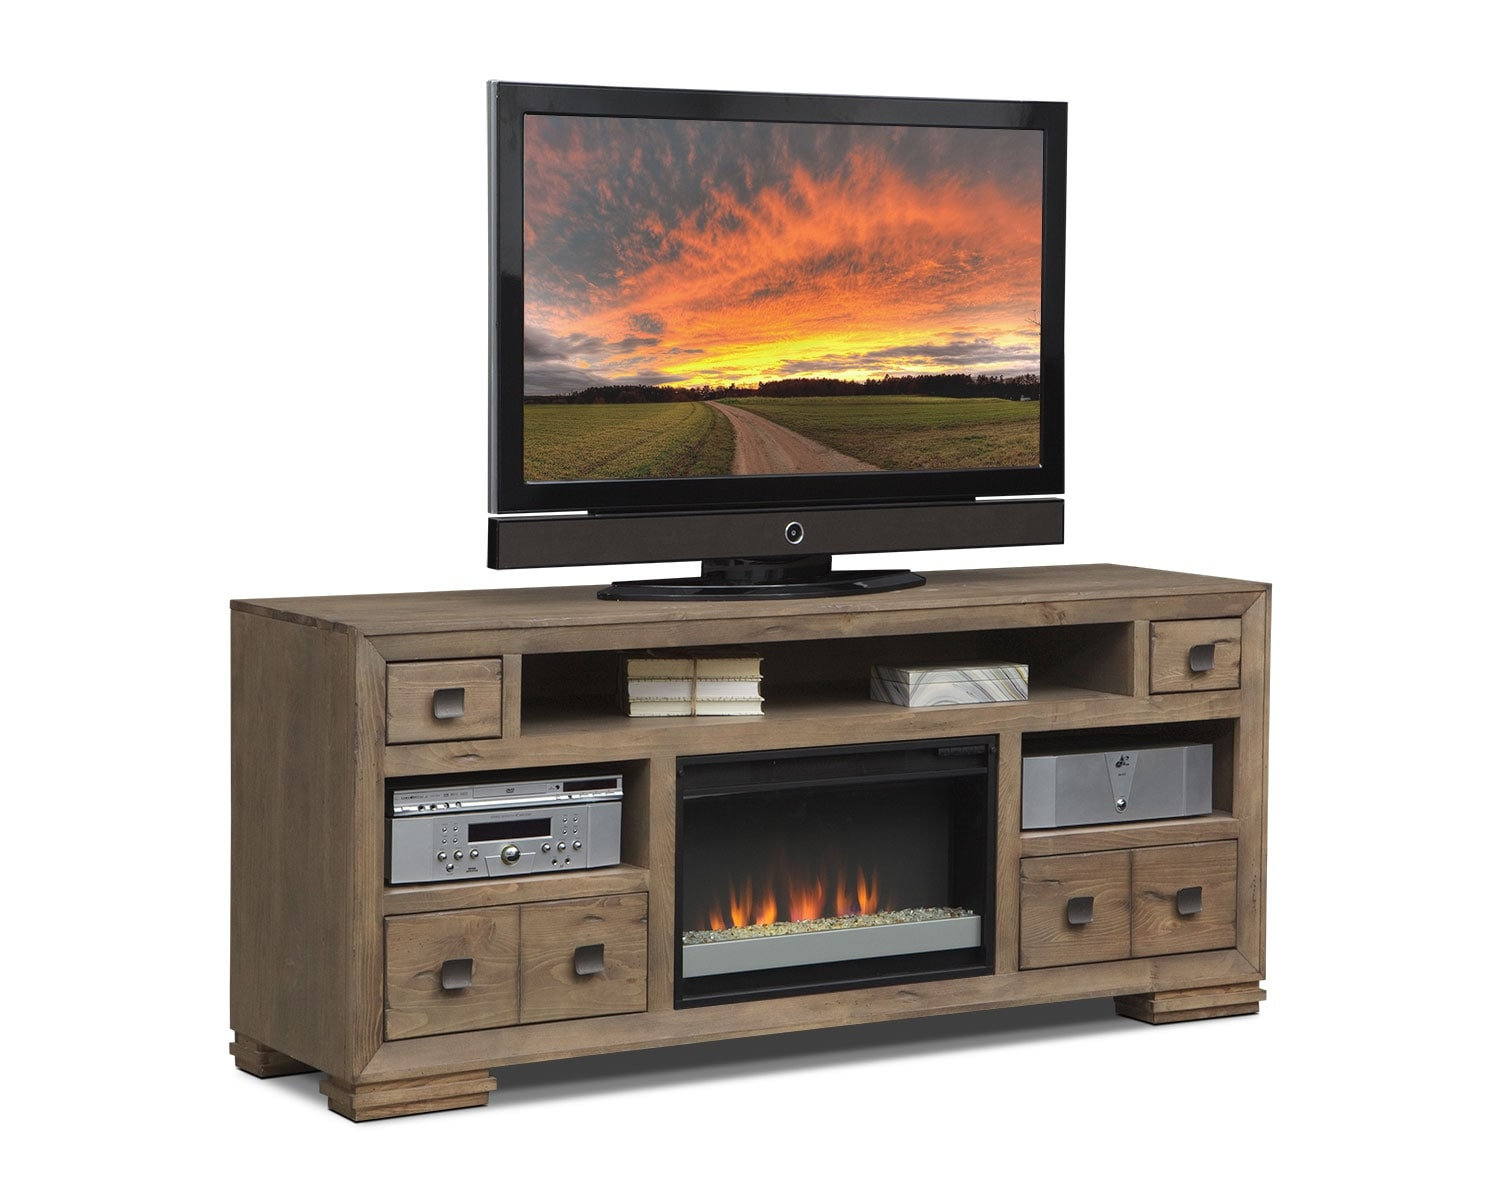 Image Result For Tv Stands With Fireplace Inserta